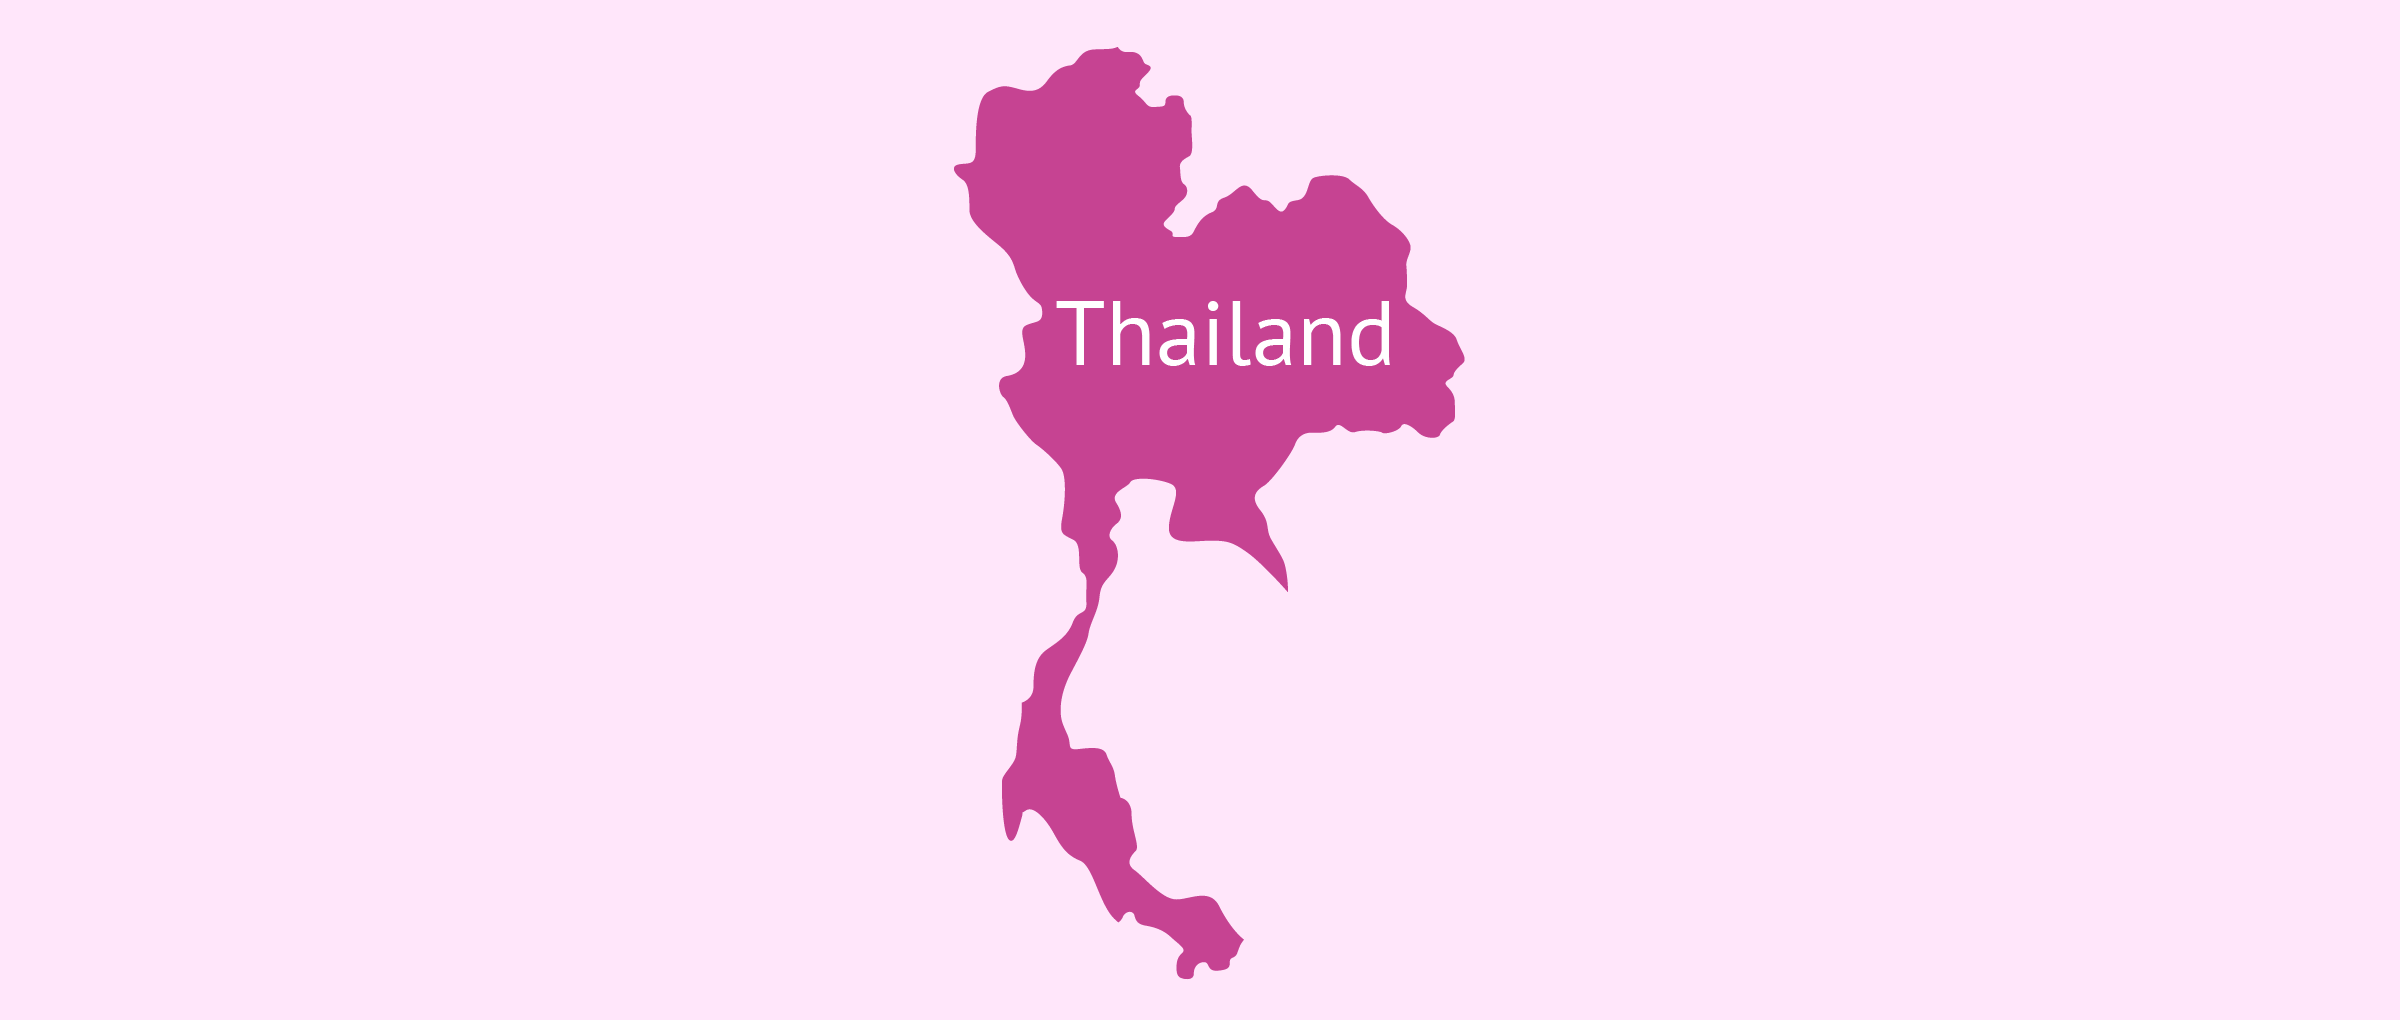 Surrogacy in Thailand: Legislation, Costs and Debate